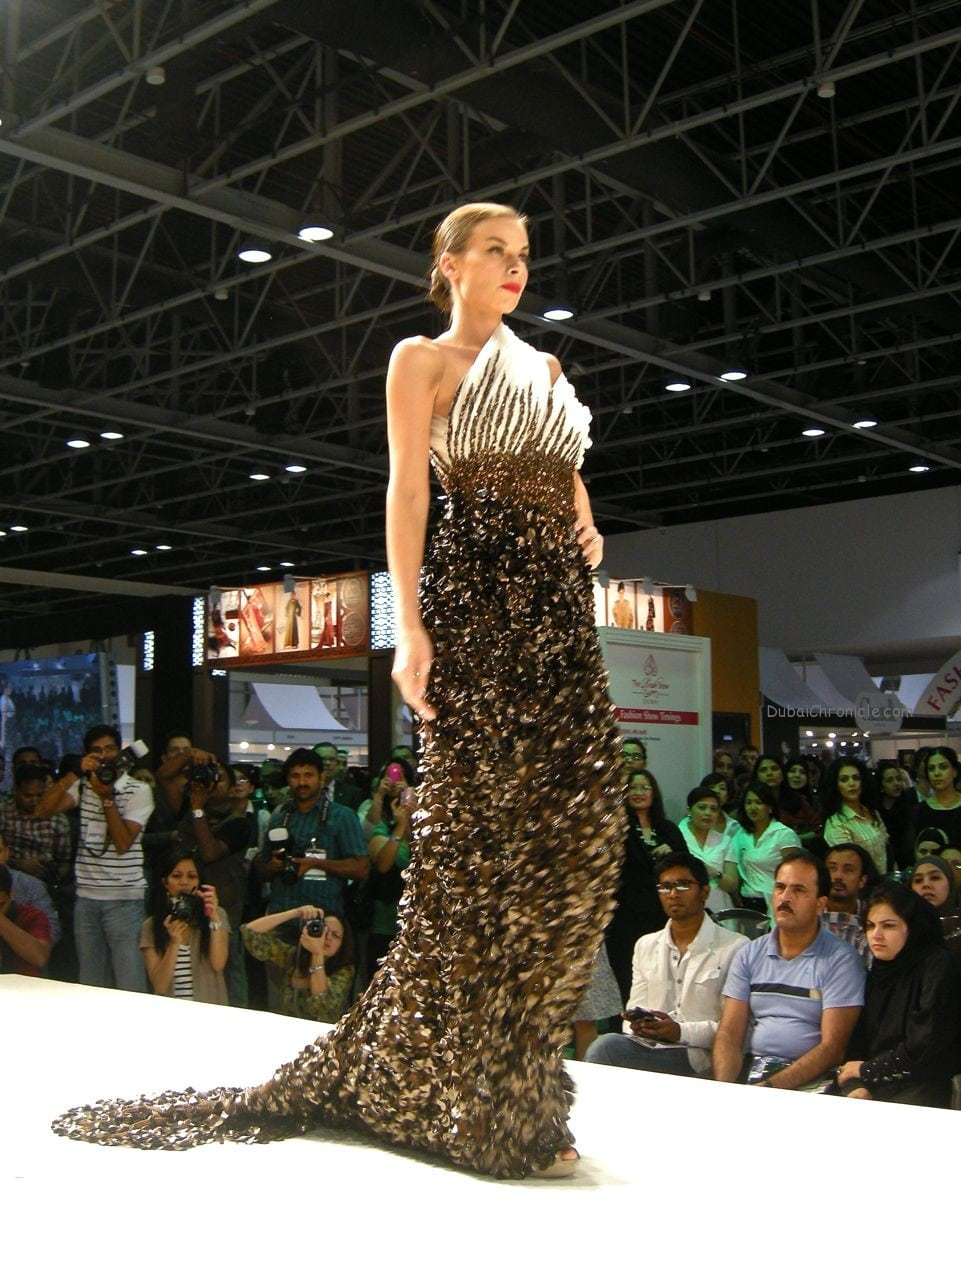 Dubai-grown Haute Couture - Bride Show Dubai 20